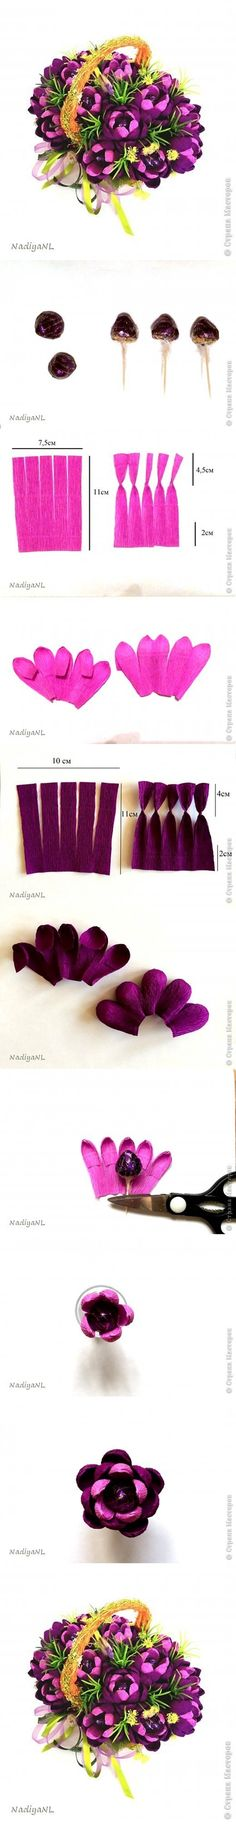 chocolate flower bouquet tutorial http://www.fabartdiy.com/diy-beautiful-chocolate-flower-bouquet/